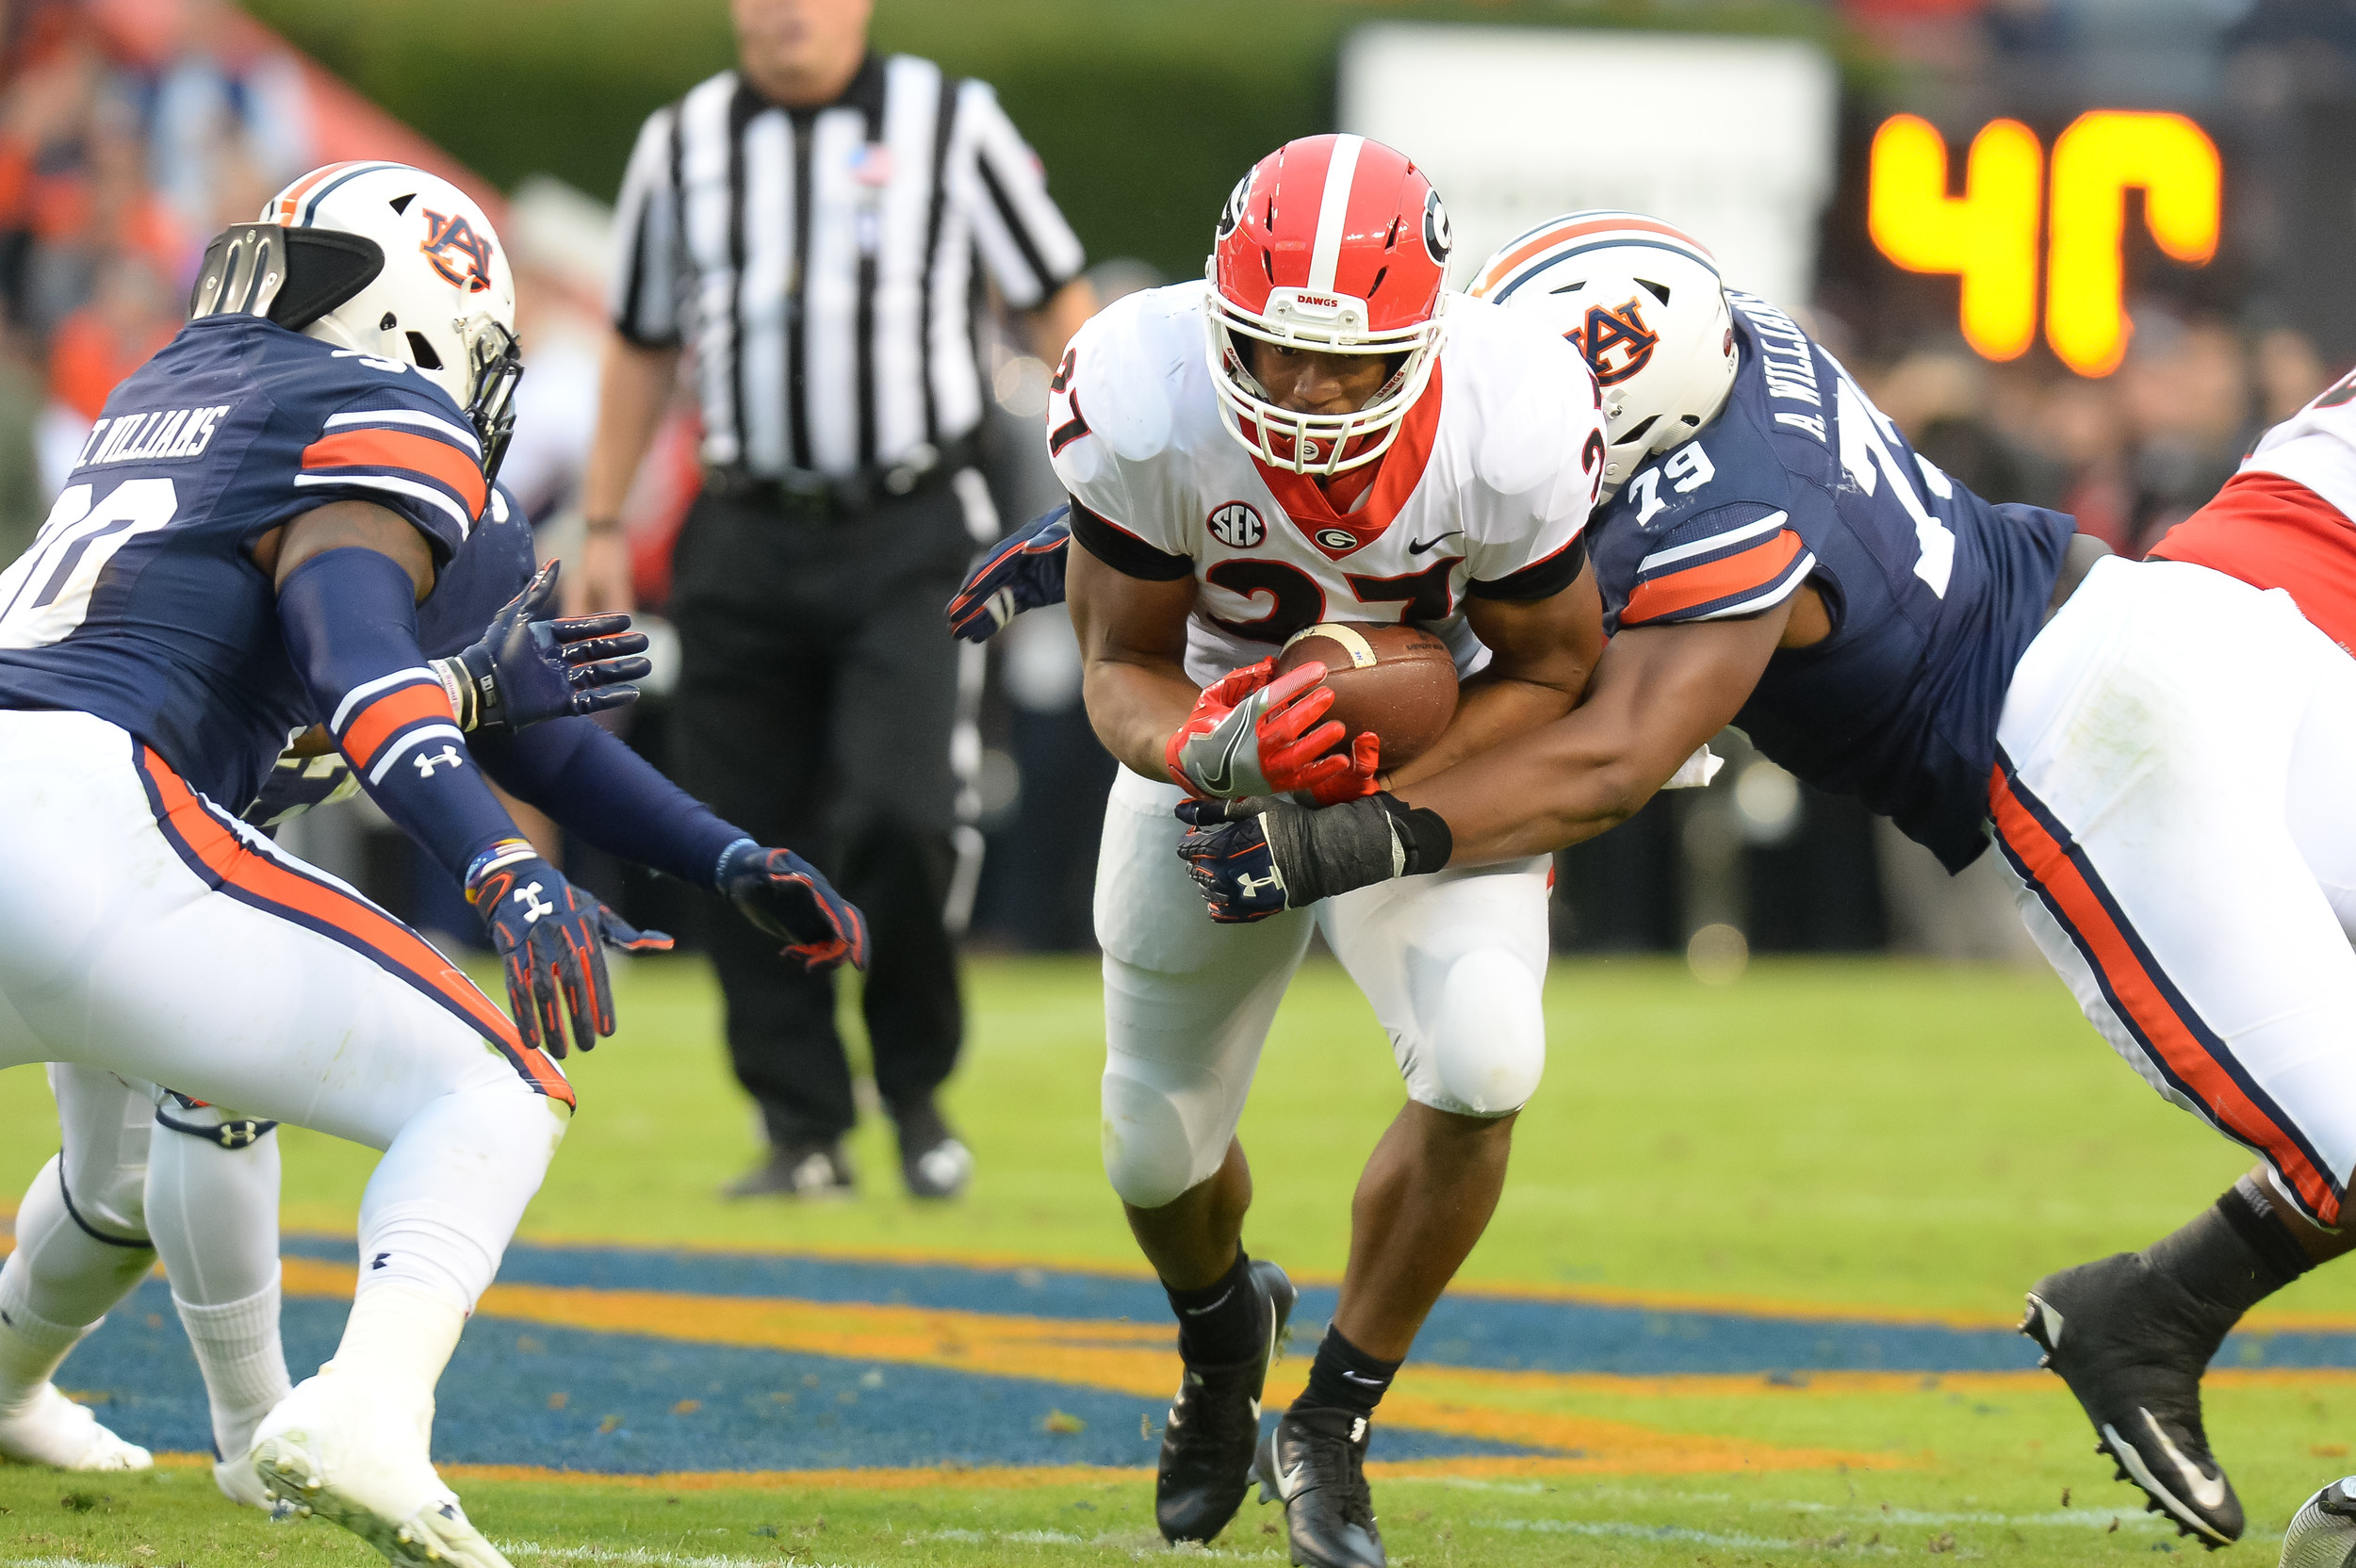 Georgia Bulldogs running back Nick Chubb (27) is tackled by Auburn Tigers defensive lineman Andrew Williams (79) during the first half of Saturday's game, at Jordan-Hare Stadium.